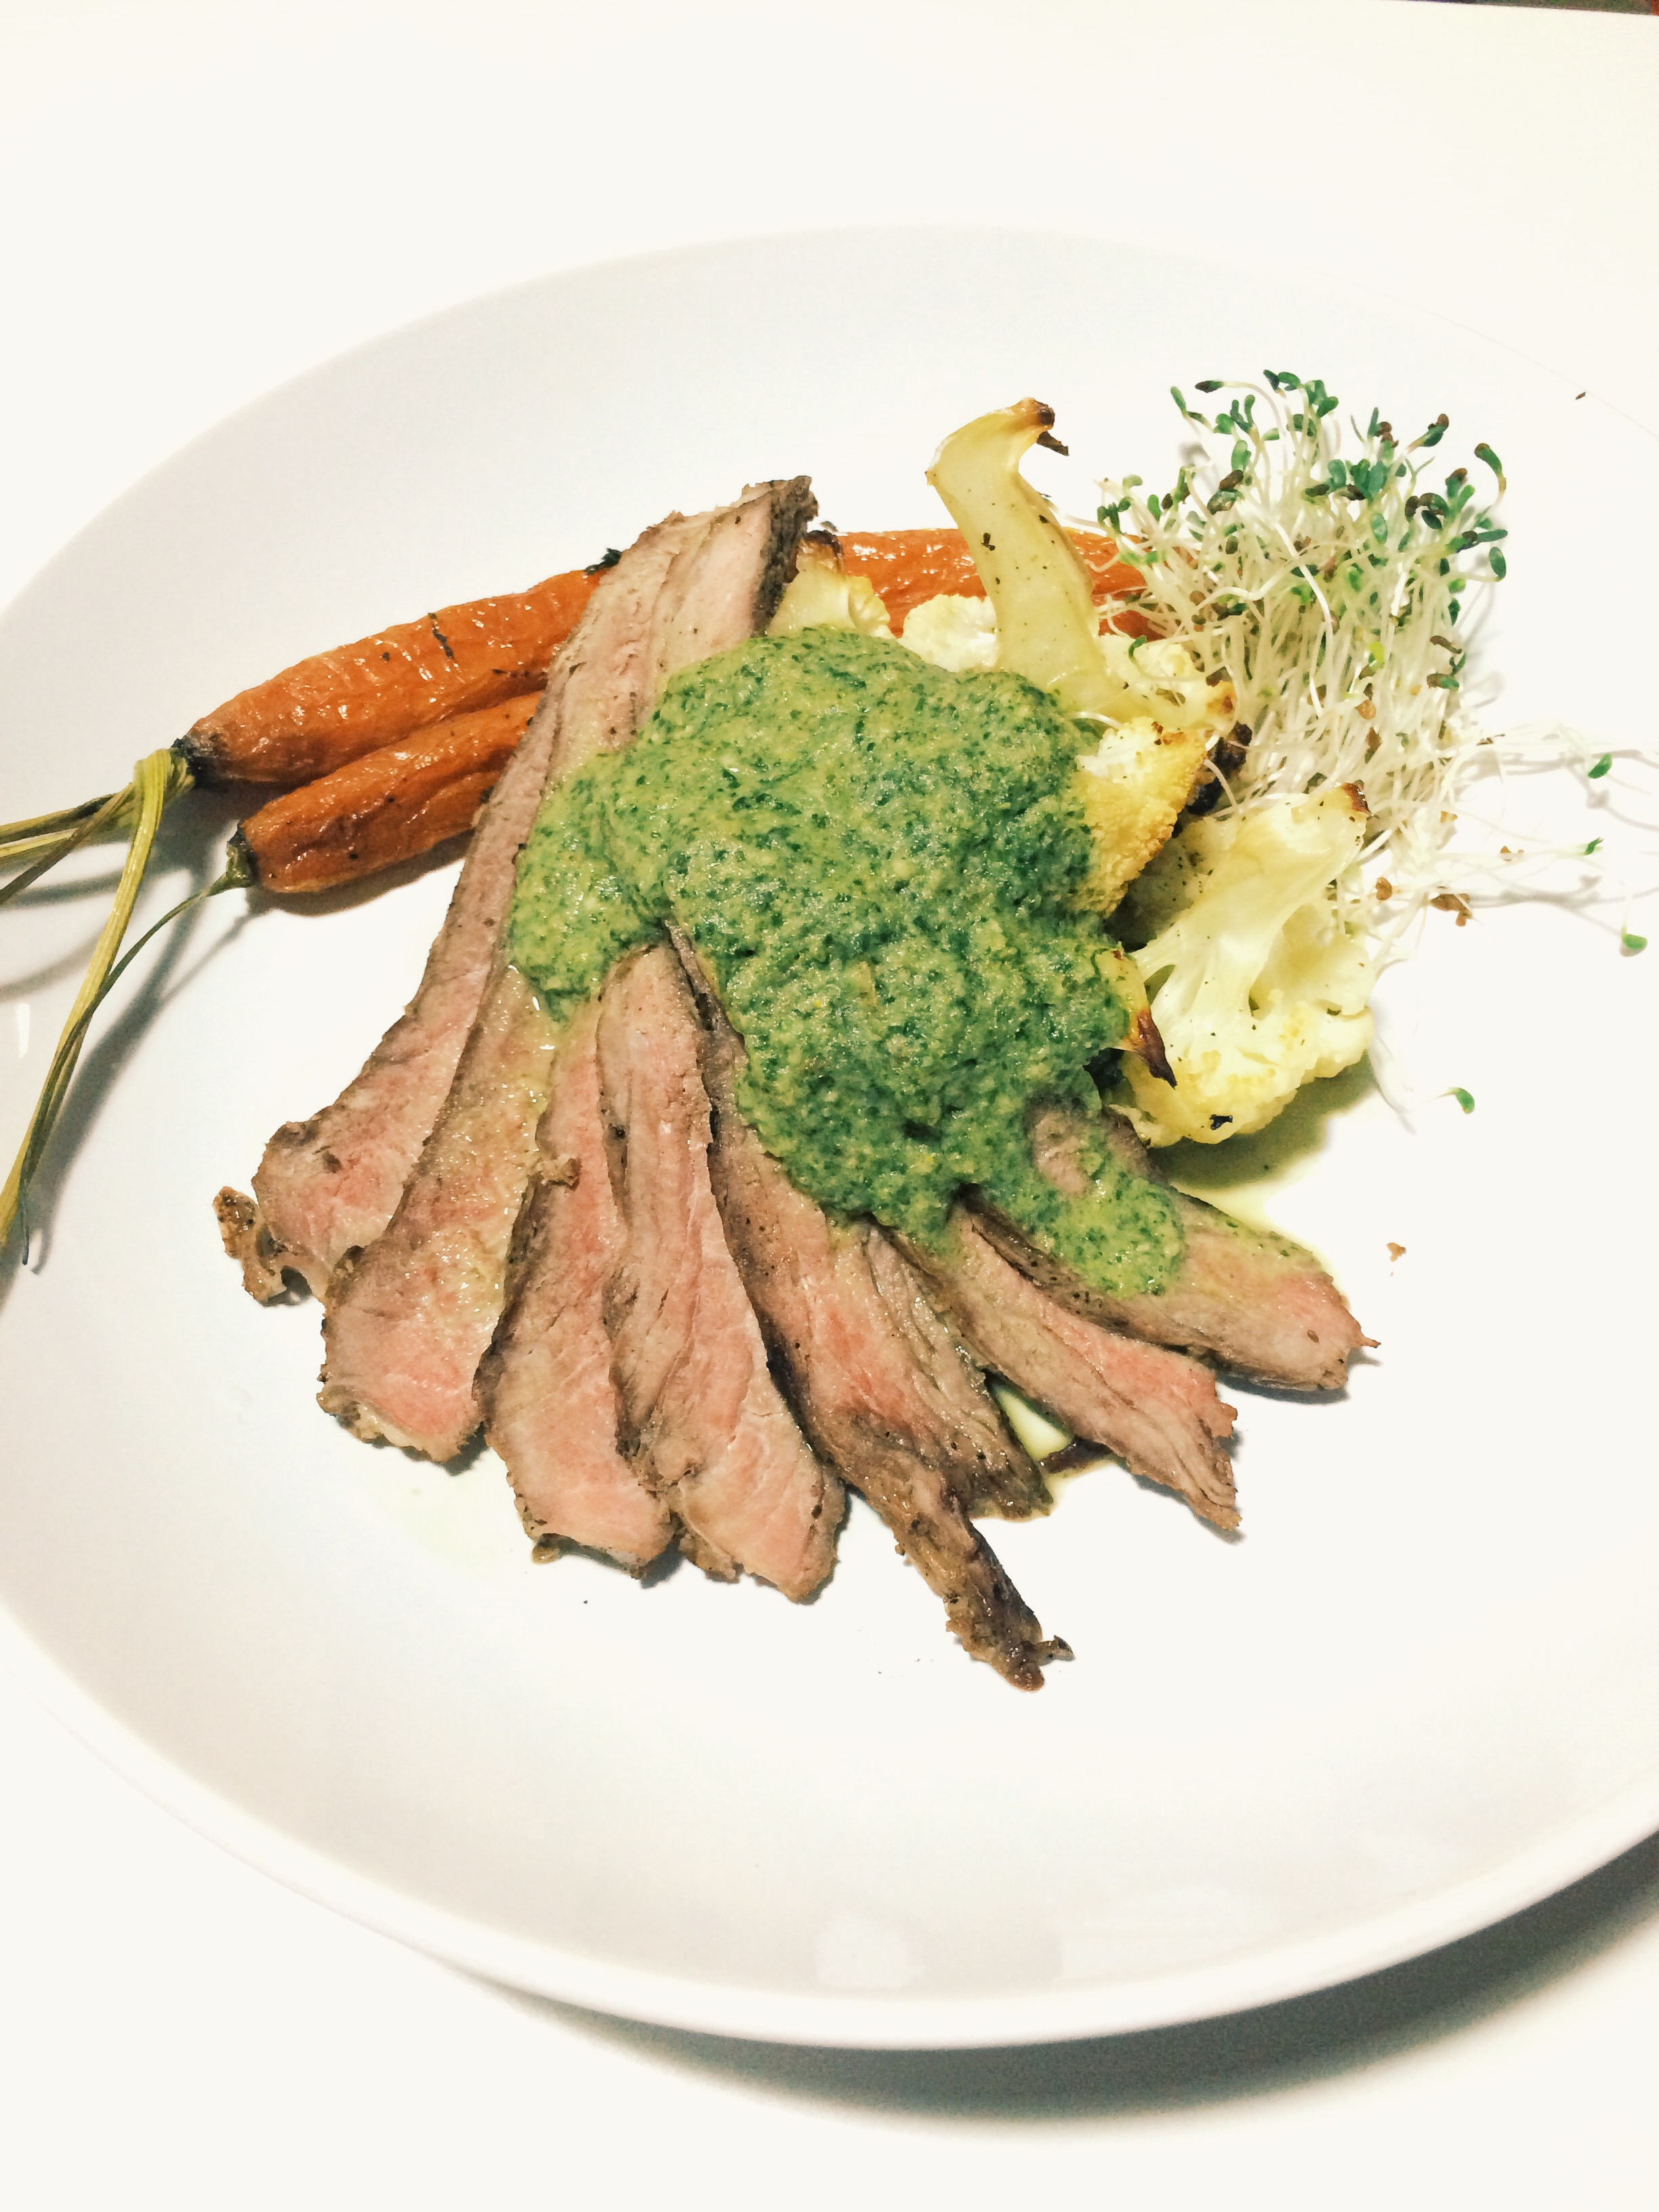 STEAK WITH ROASTED VEGETABLES AND A CILANTRO SPROUT SAUCE